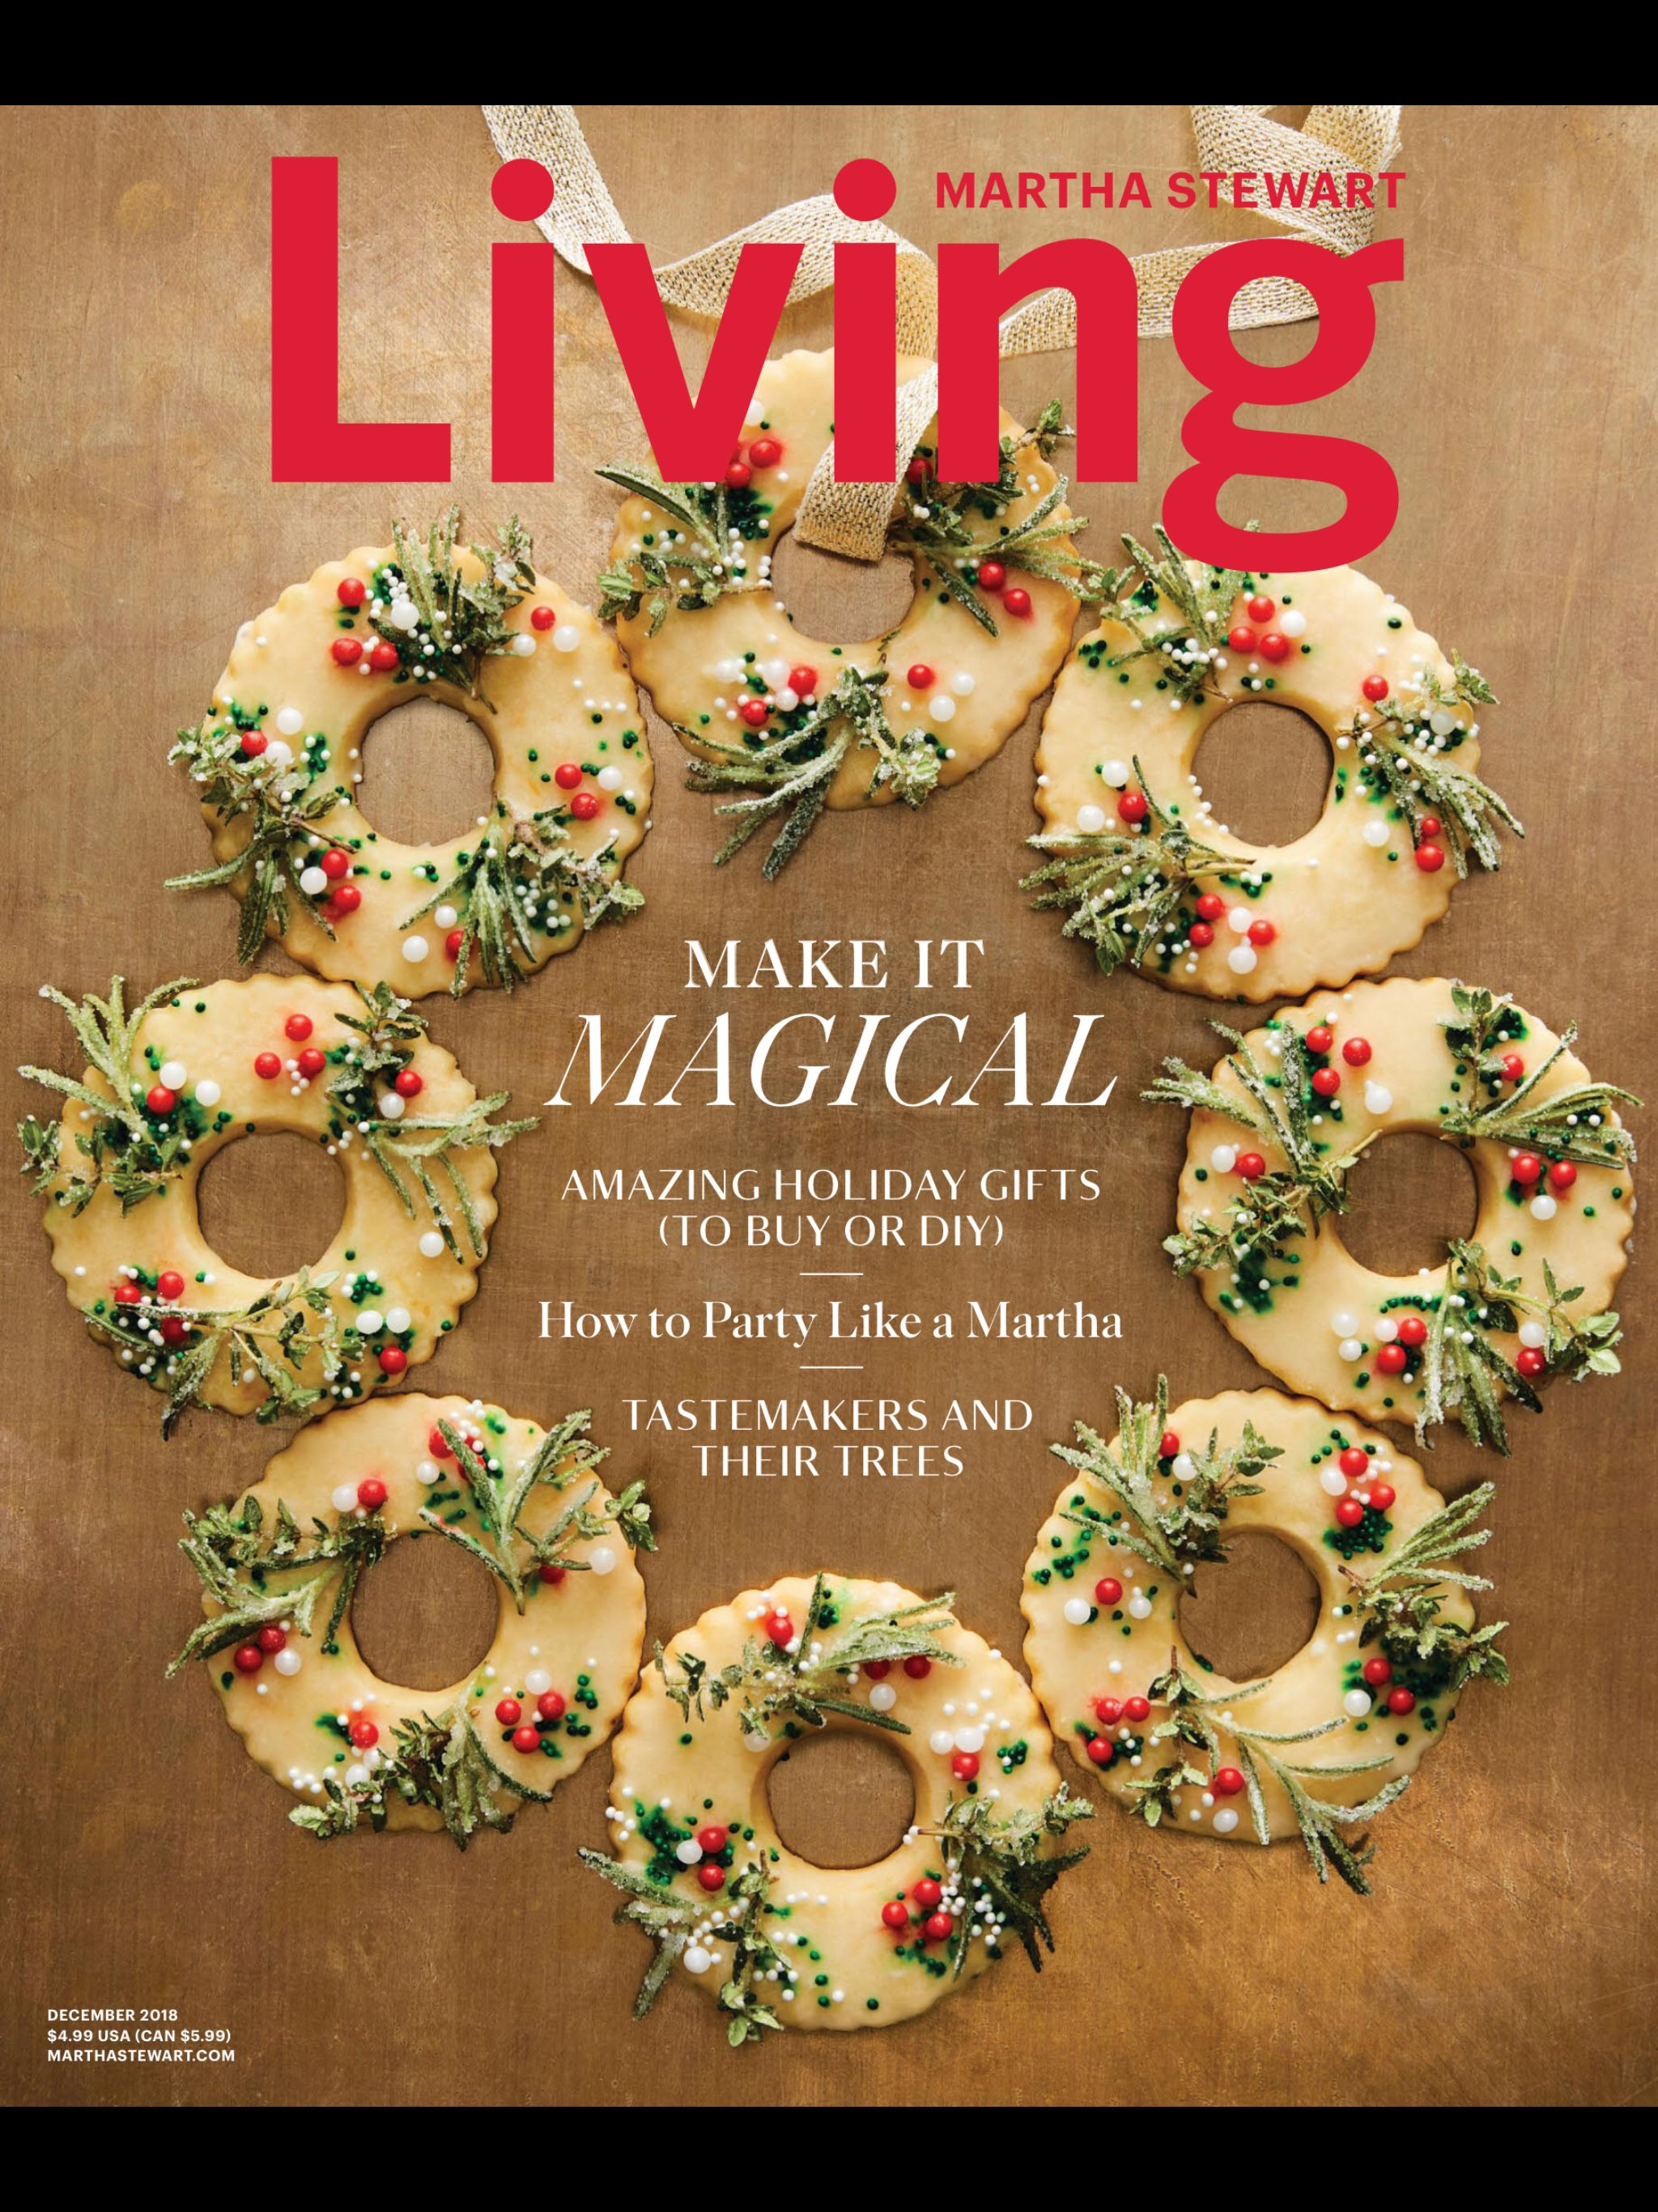 Meyer Lemon Shortbread Wreath Cookies With Sugared Rosemary And